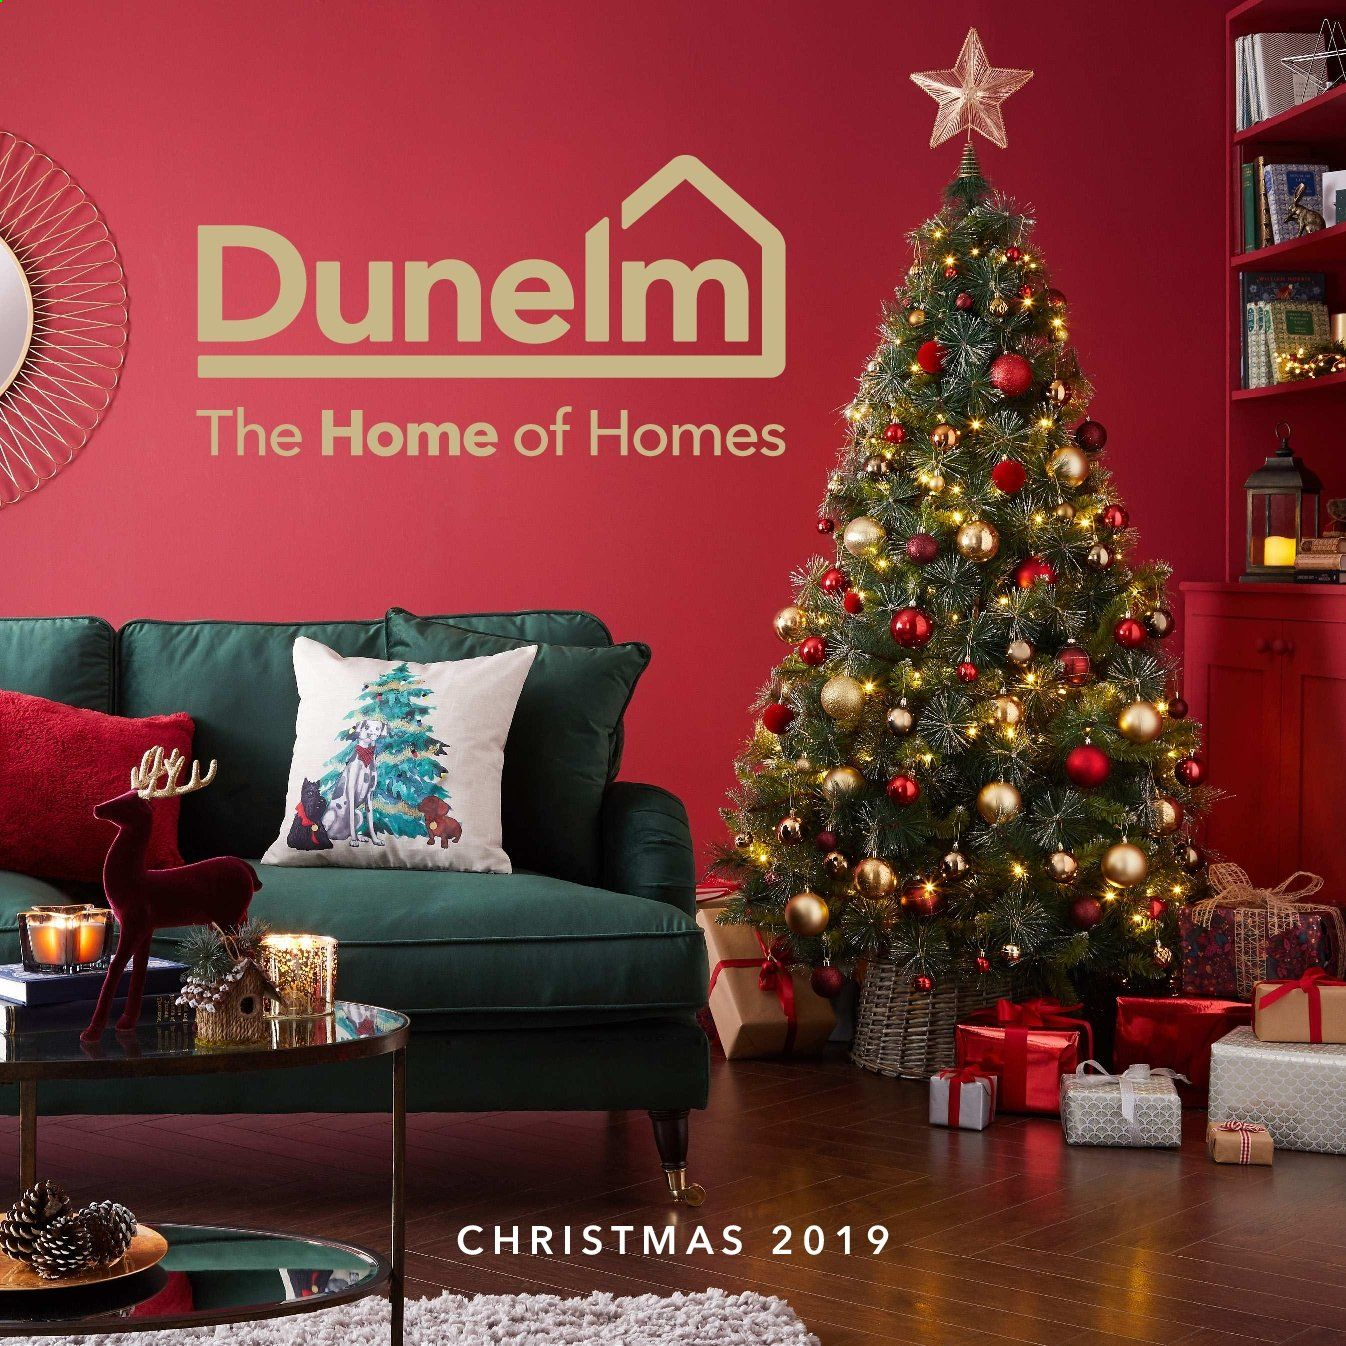 Dunelm offer . Page 1.